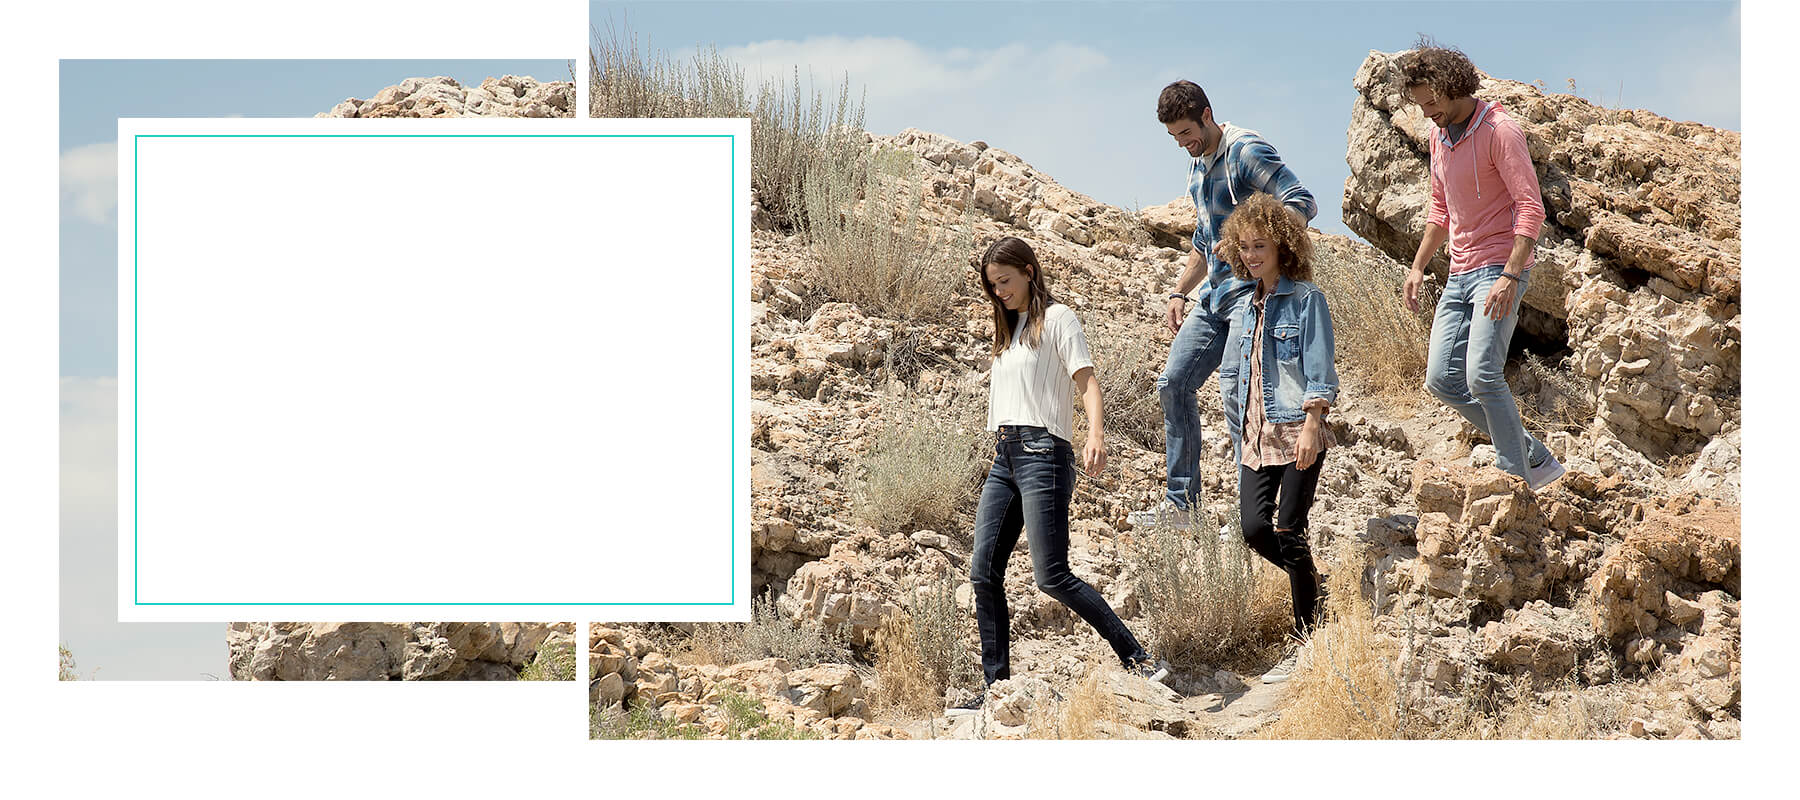 Group of people walking on rocks, wearing Buckle spring clothes.